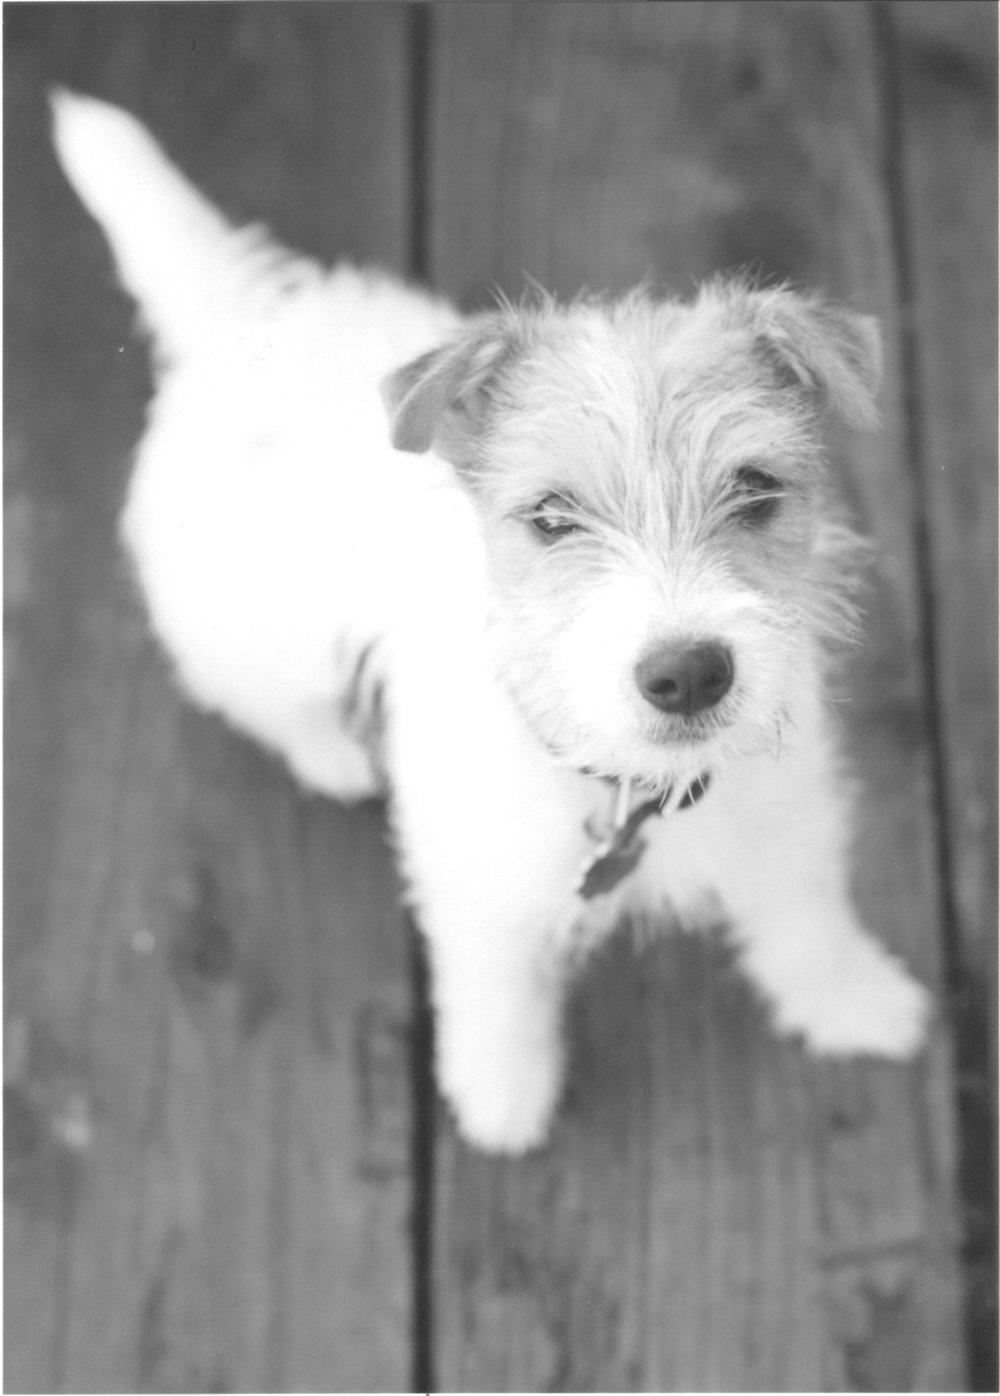 Small black and white dog on deck